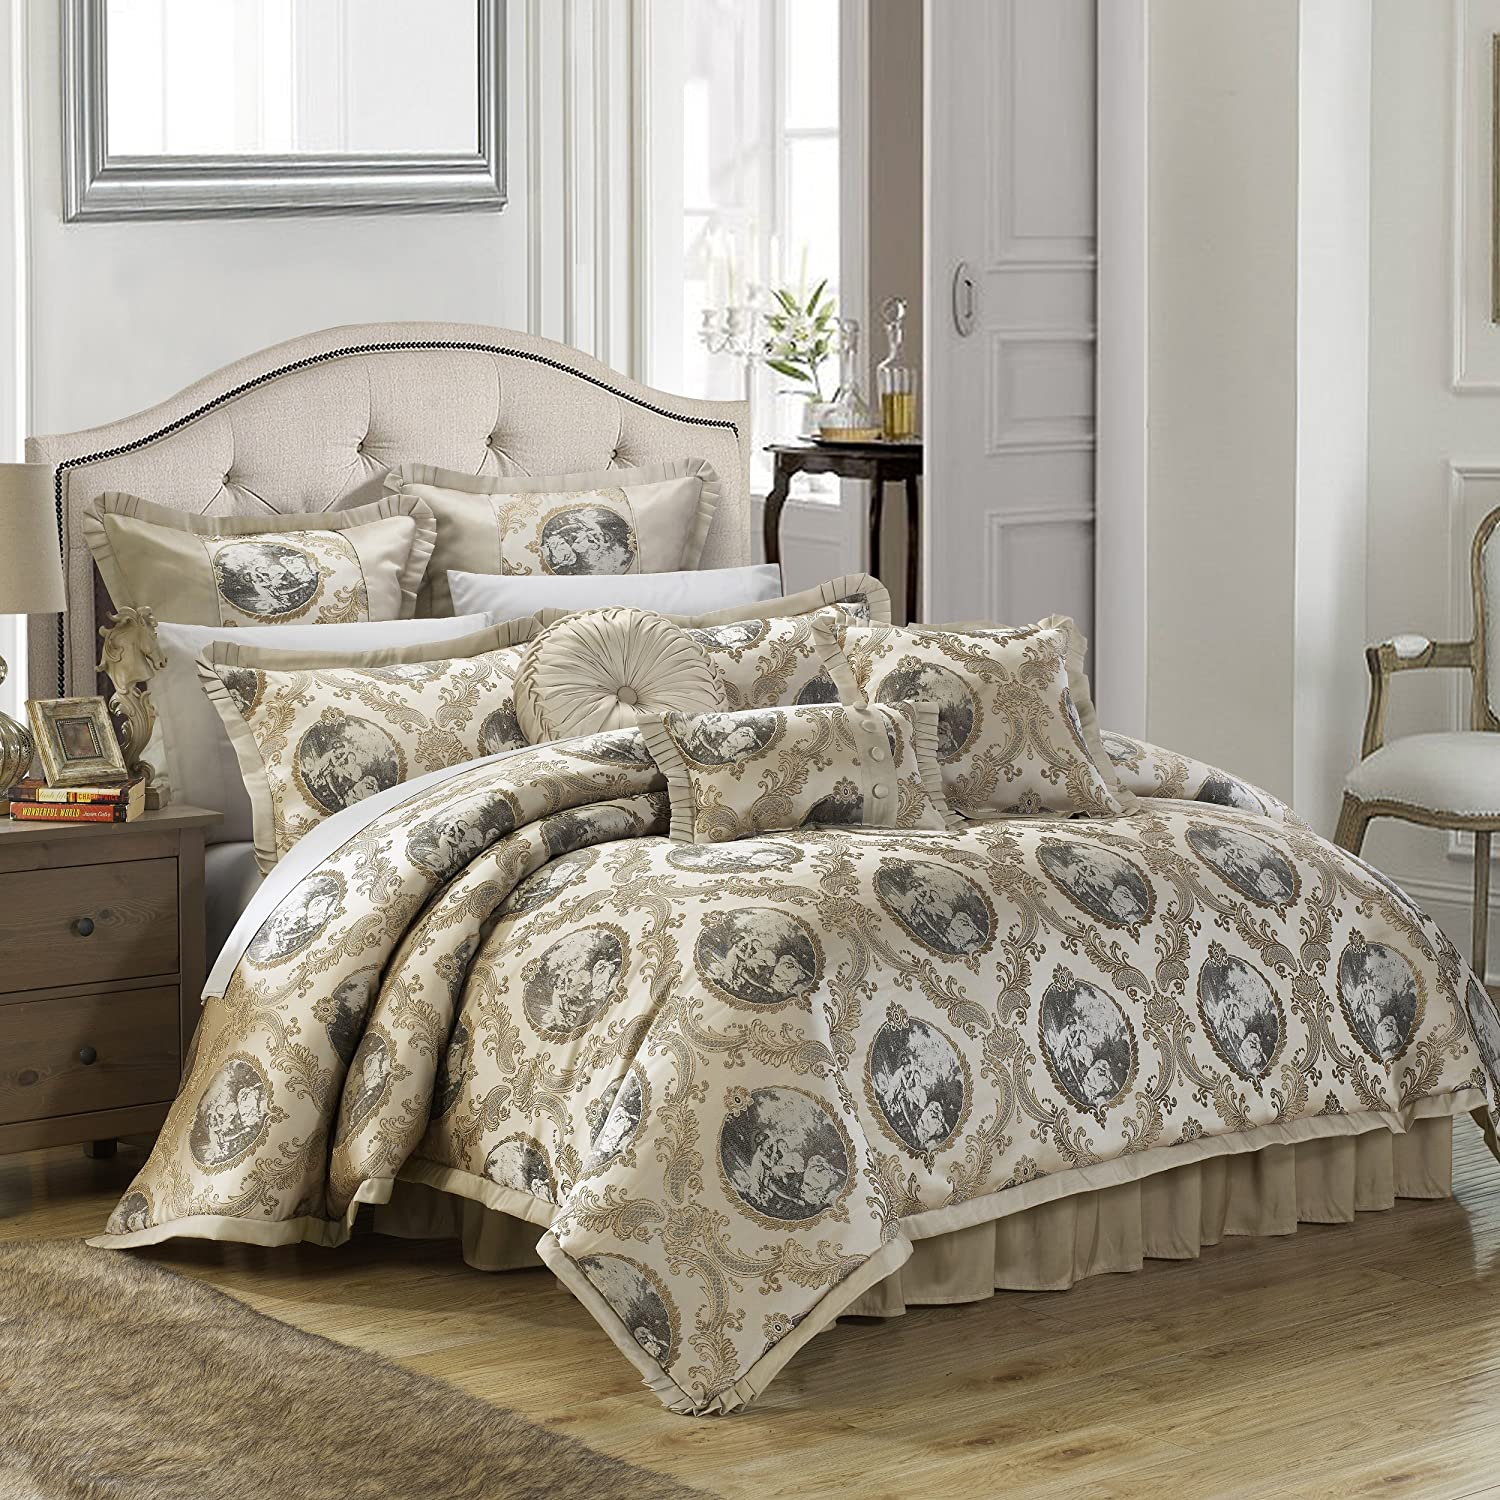 Chic Home 9 Piece Romeo & Juliet Decorator Upholstery Quality Jacquard Motif Fabric Bedroom Comforter Set & Pillows Ensemble, Queen, Beige